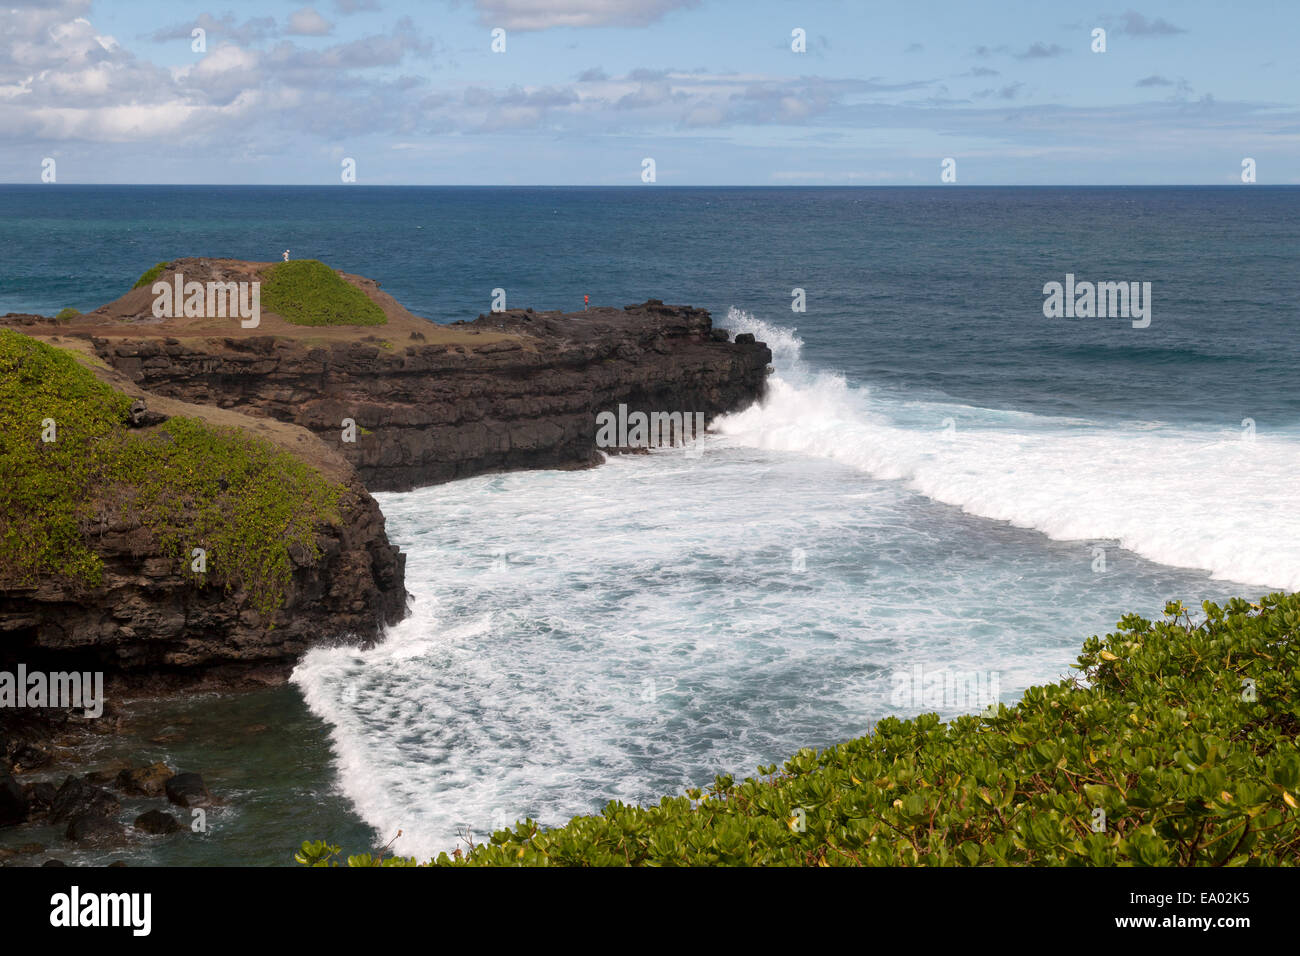 The Rocks that weep or cry, or the Crying rocks, le Gris Gris, south coast, Mauritius - Stock Image